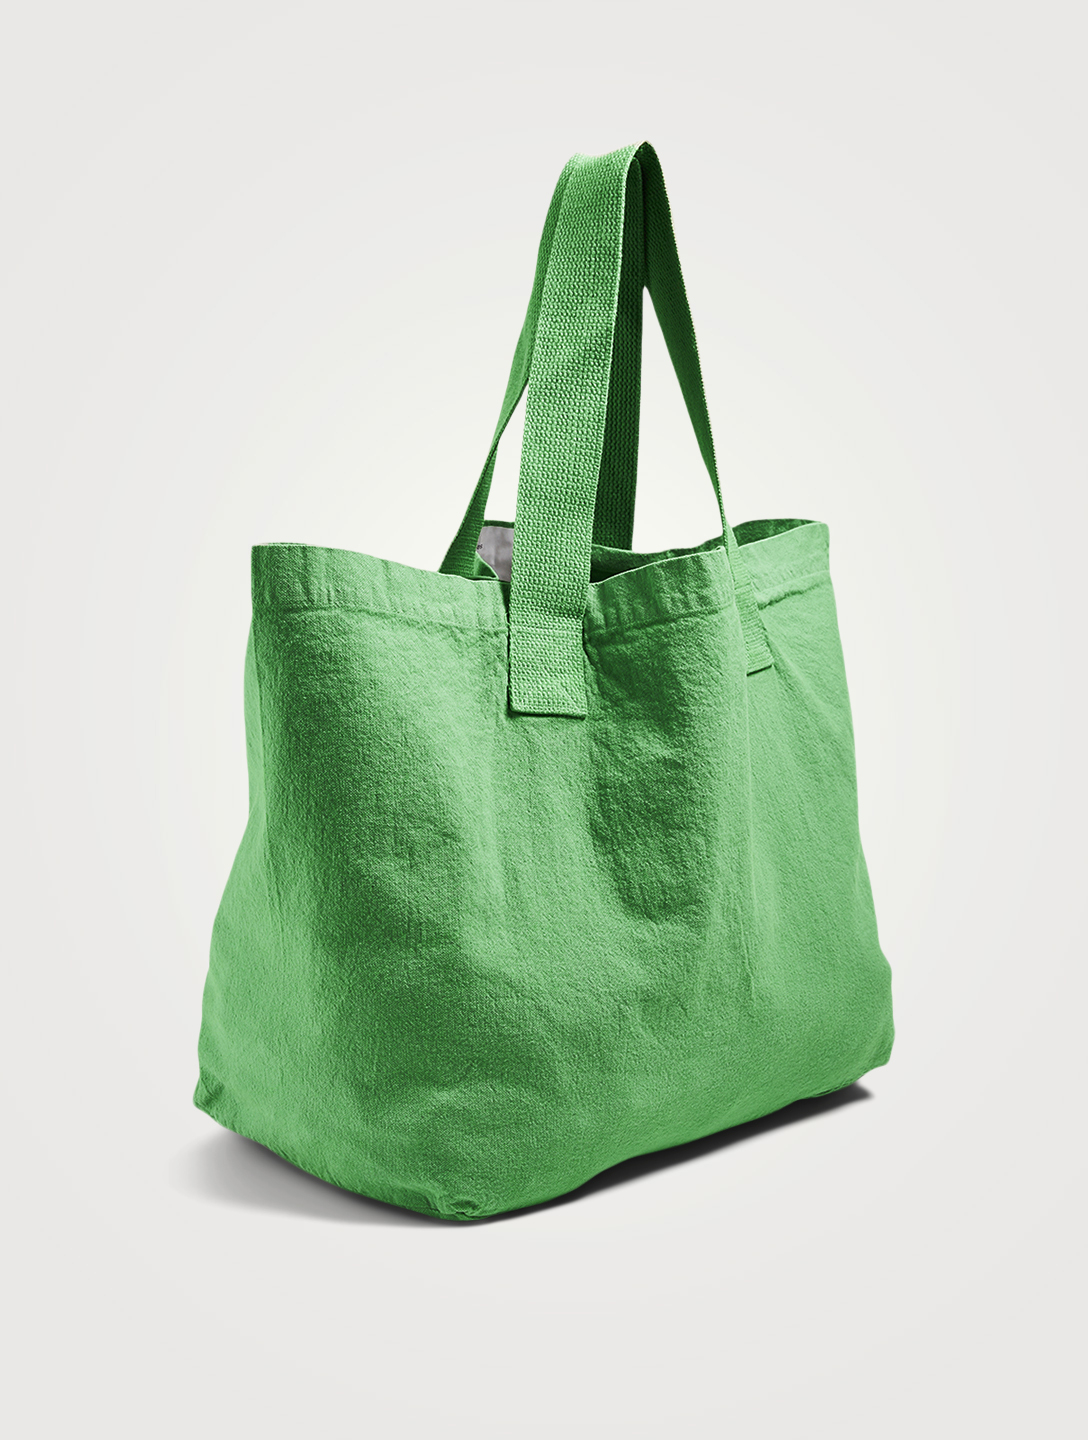 SPORTY & RICH SRWC Logo Tote Bag Women's Green